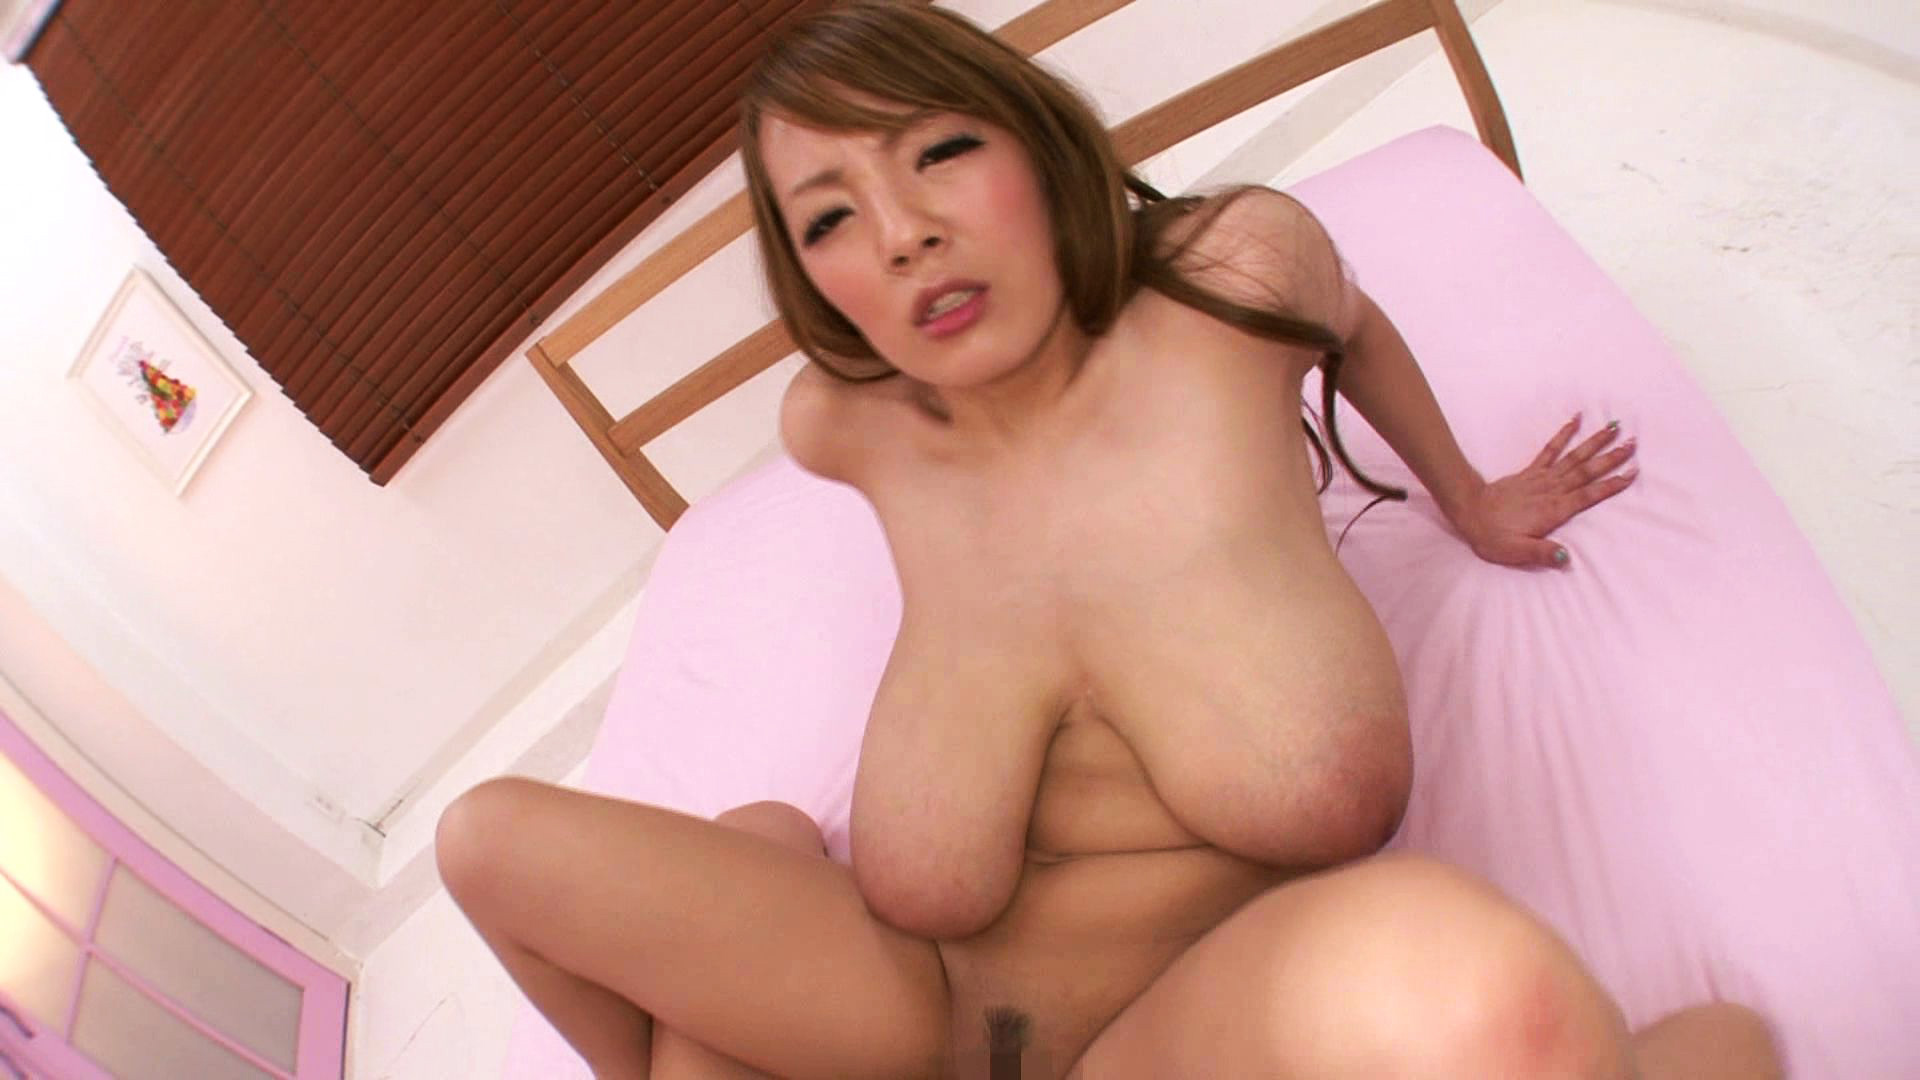 Arianes beautiful blowjobs for you 4